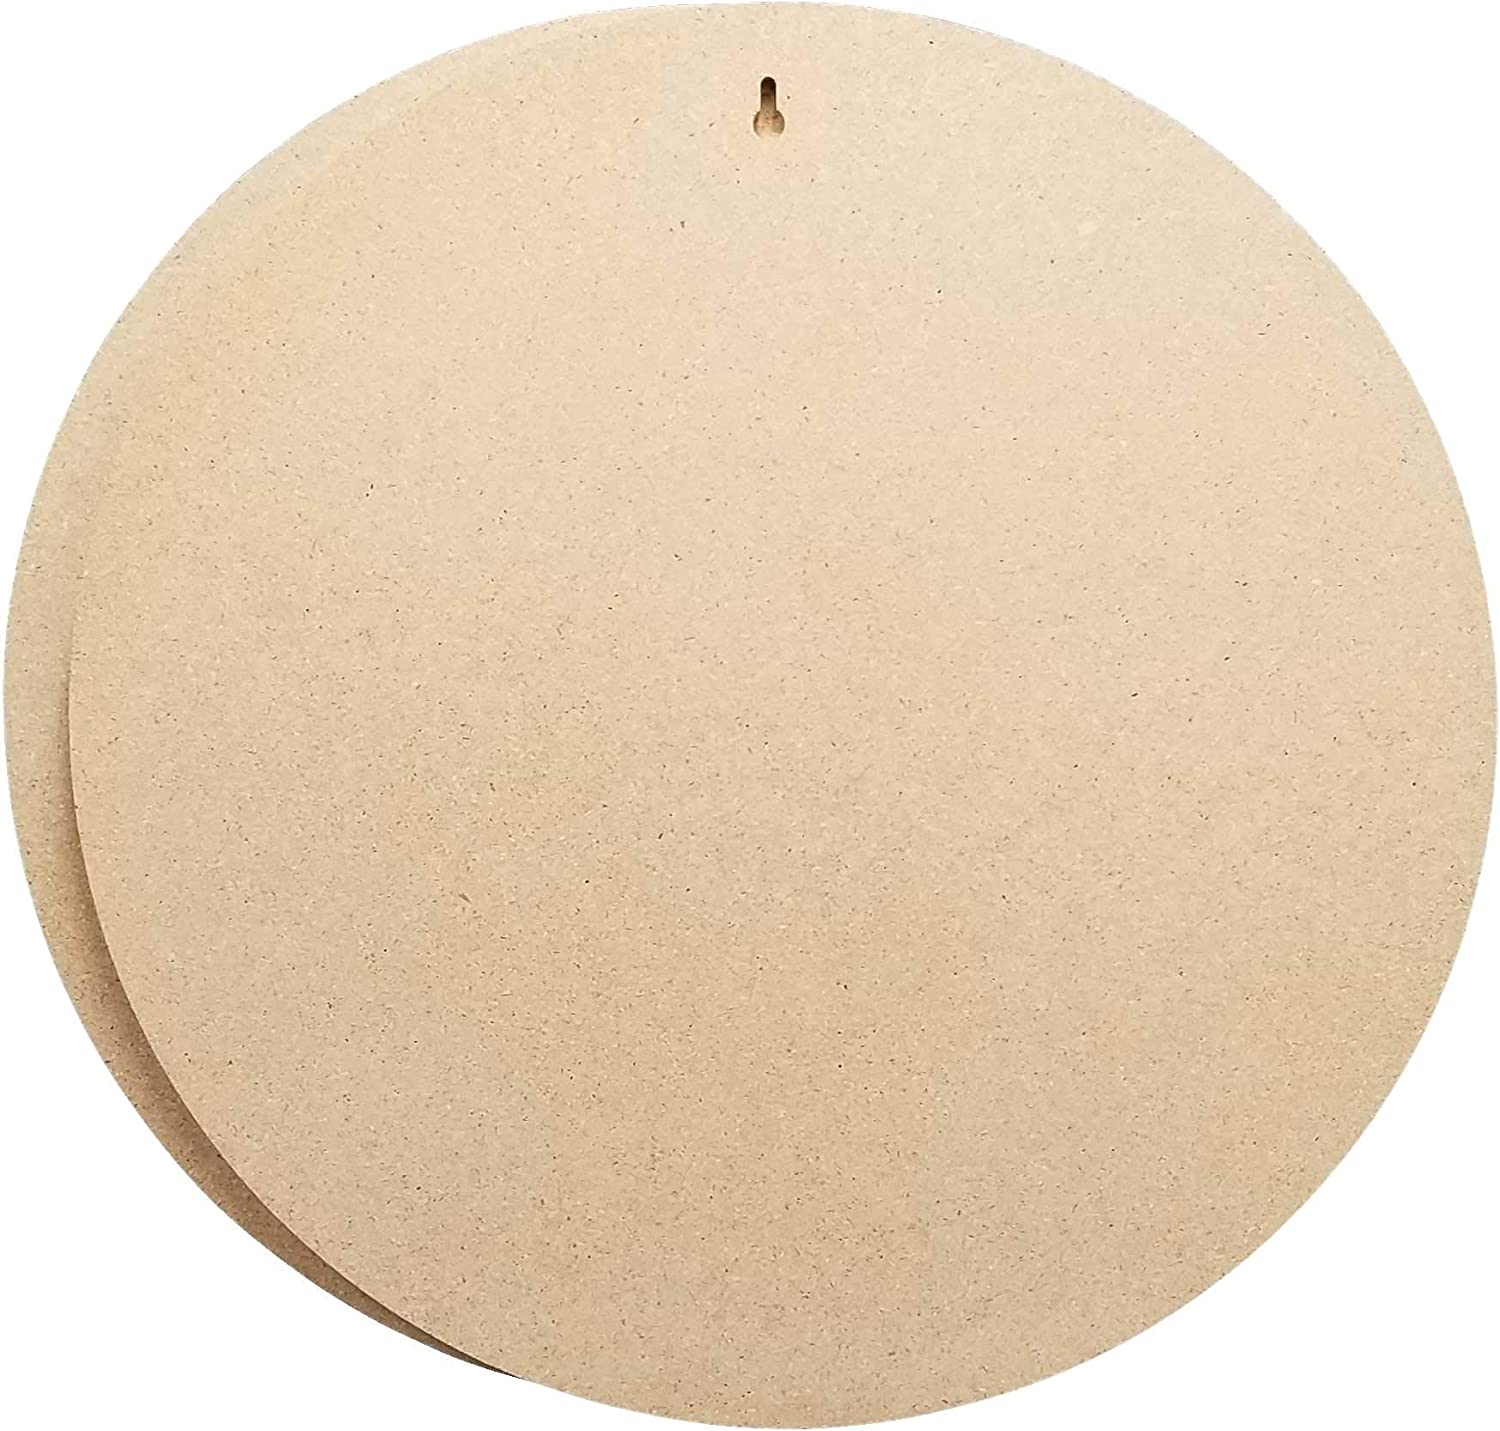 Studio Papilia Round, 18x18 inch 2-Pack | Unfinished Wooden Shape | Paint Pouring Art Panel | Wood Boards for Crafts | DIY Plaque Plank Cutout | Blank Sign Tray | Artist Painting | Resin Flow Epoxy